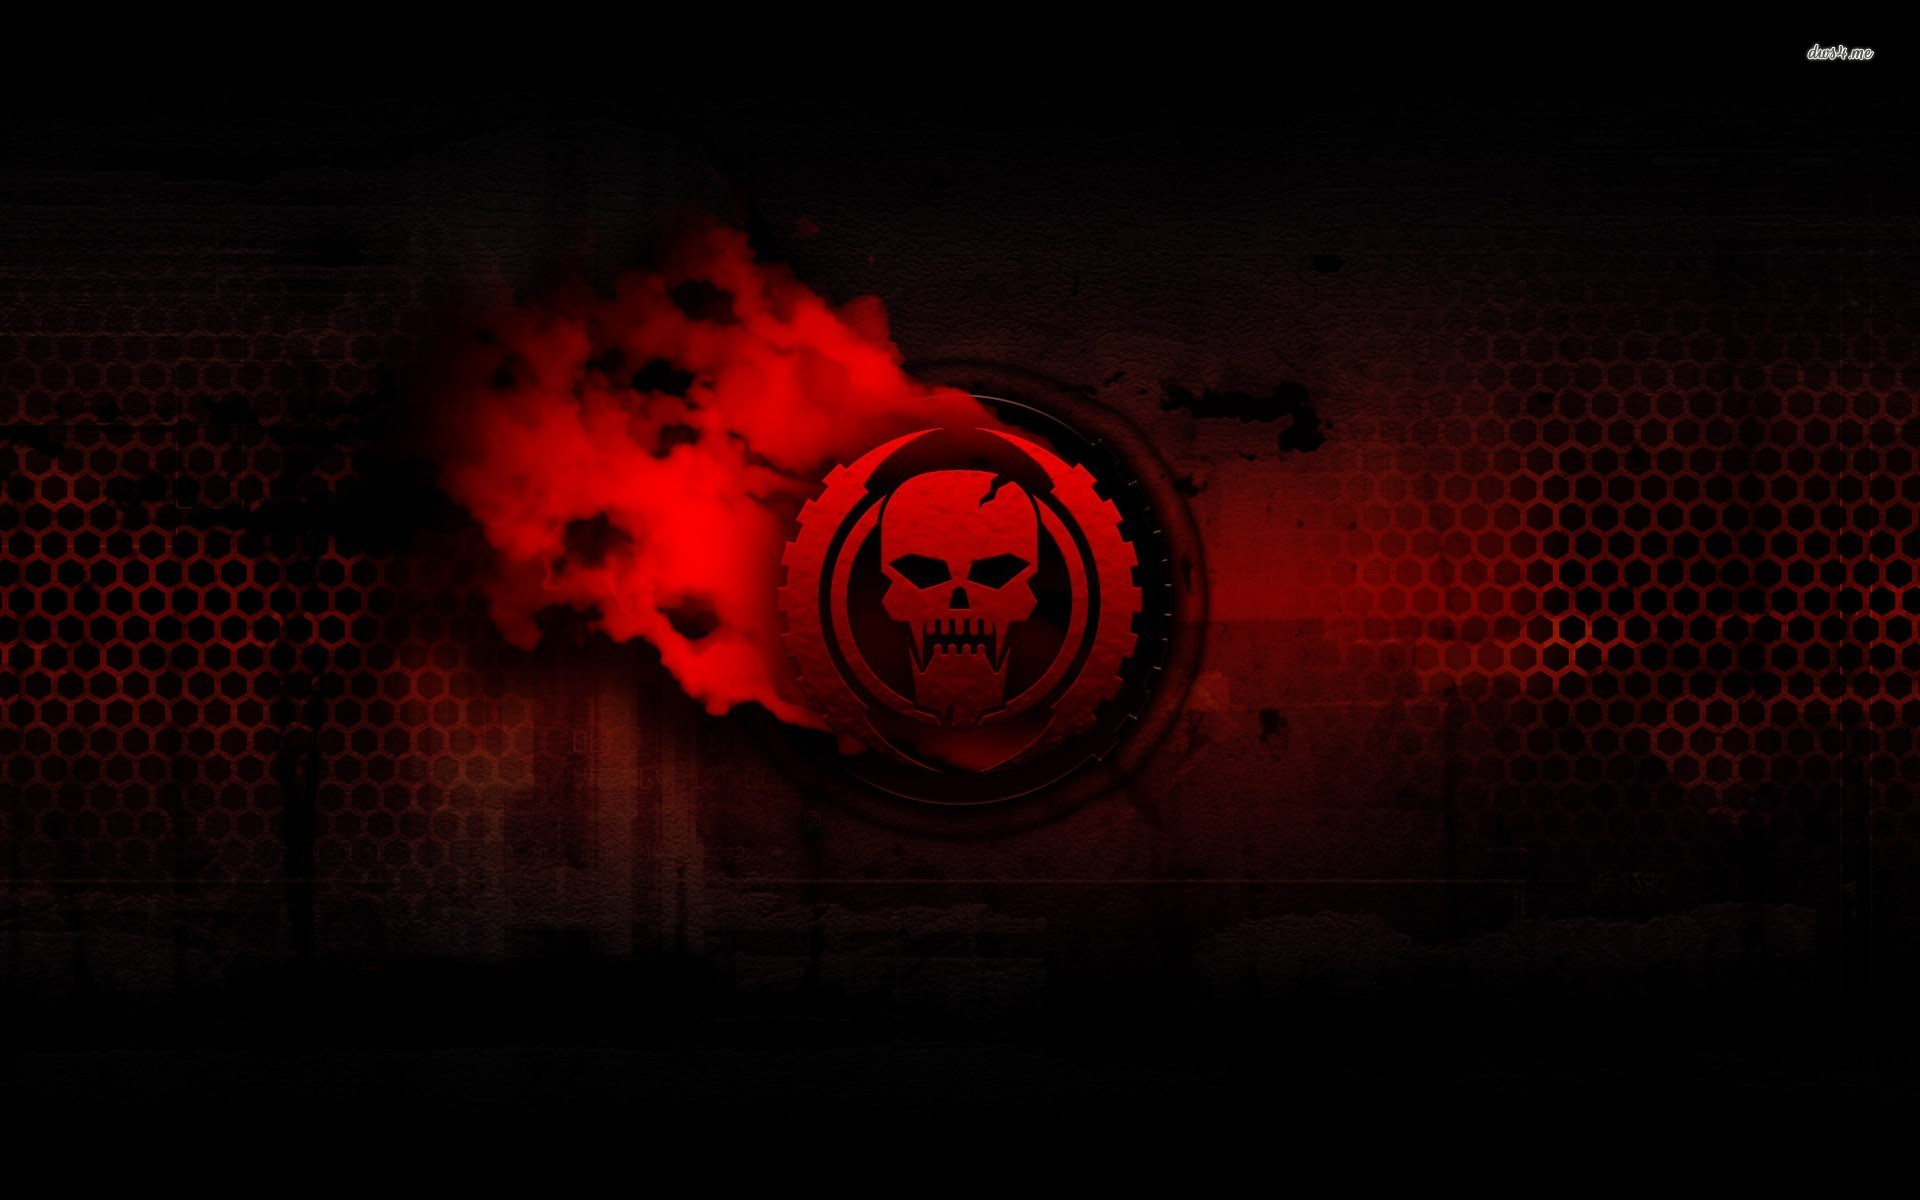 Red skull wallpaper   Digital Art wallpapers   5462 1920x1200